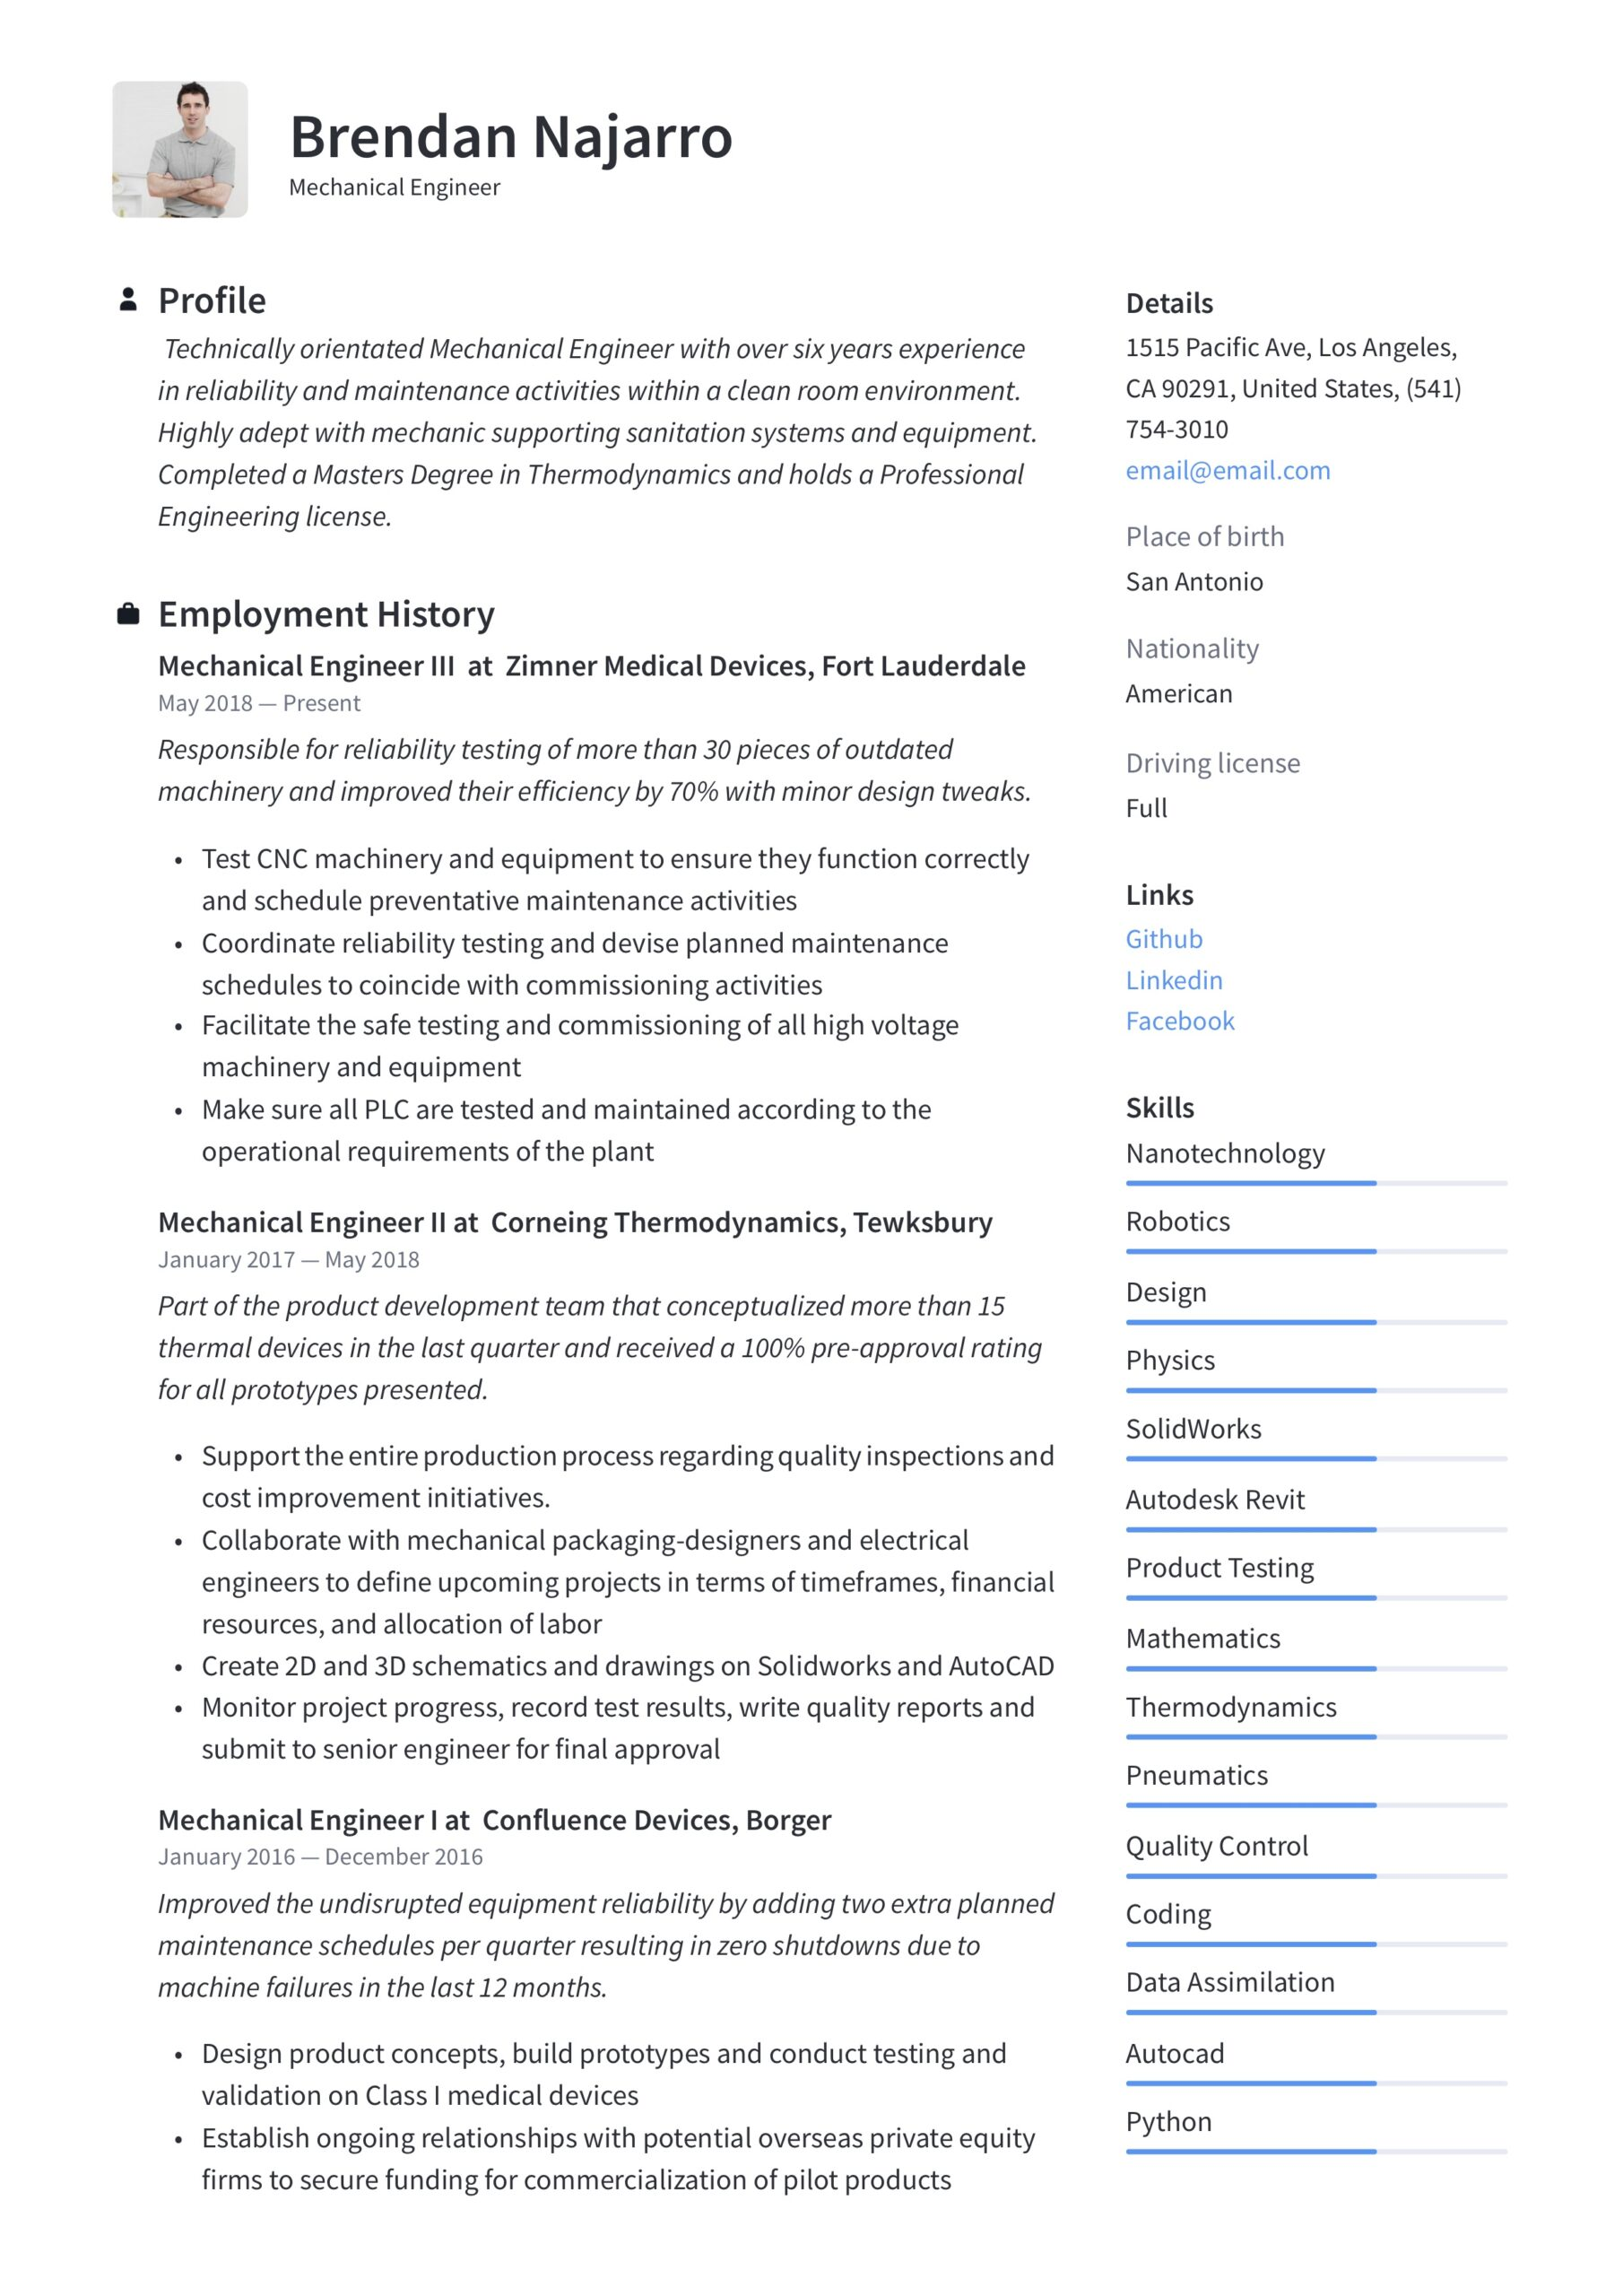 mechanical engineer resume writing guide templates pdf entry level engineering sharepoint Resume Entry Level Mechanical Engineering Resume